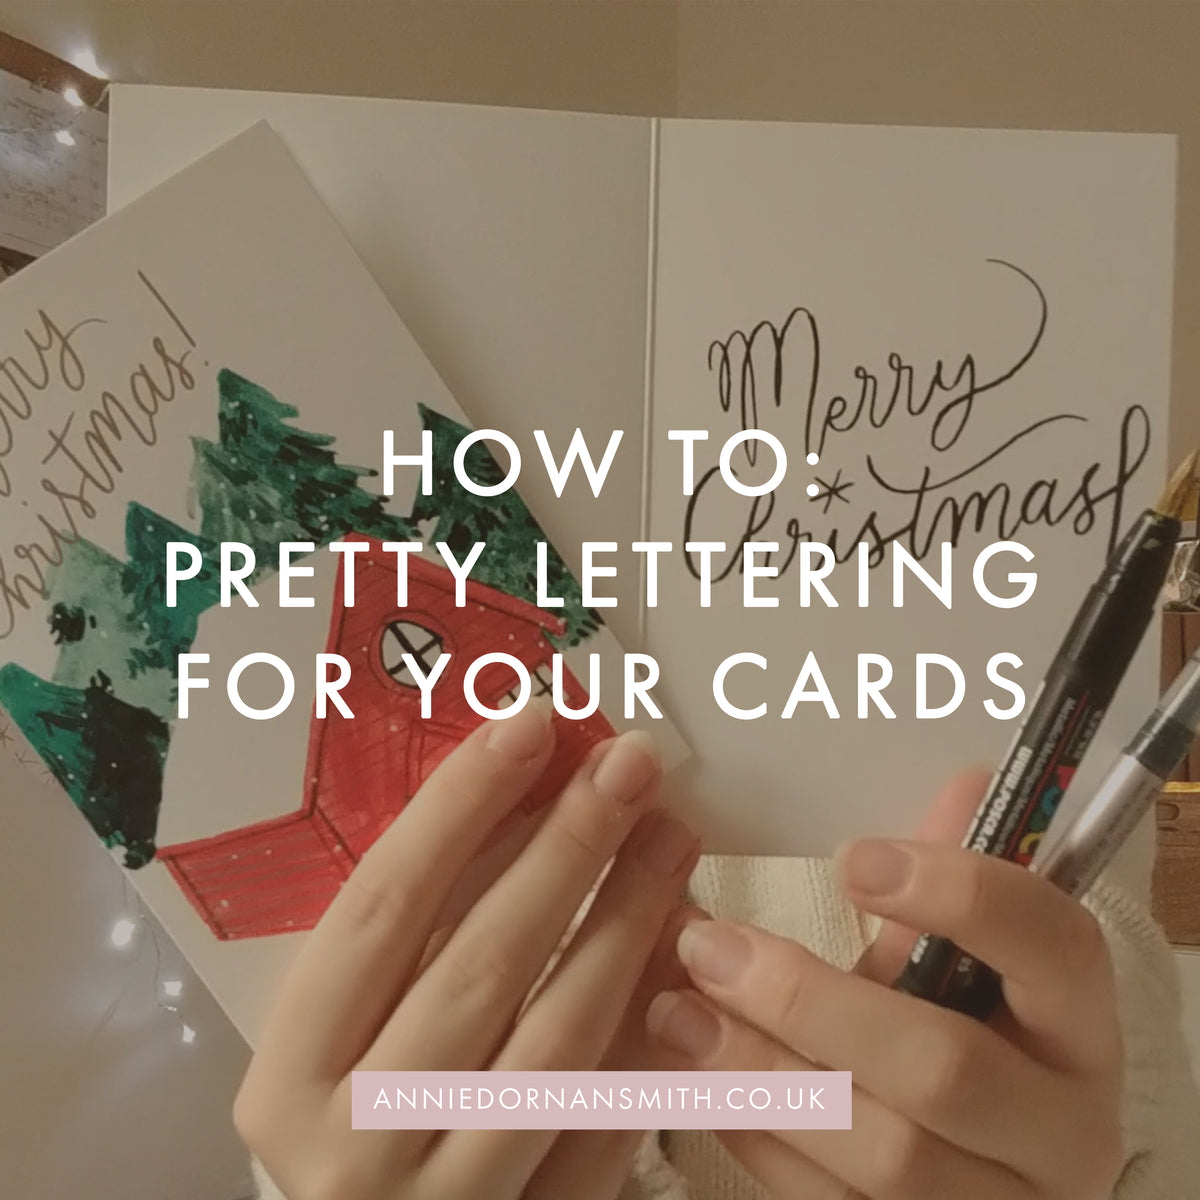 How to: Pretty Lettering For Writing Cards